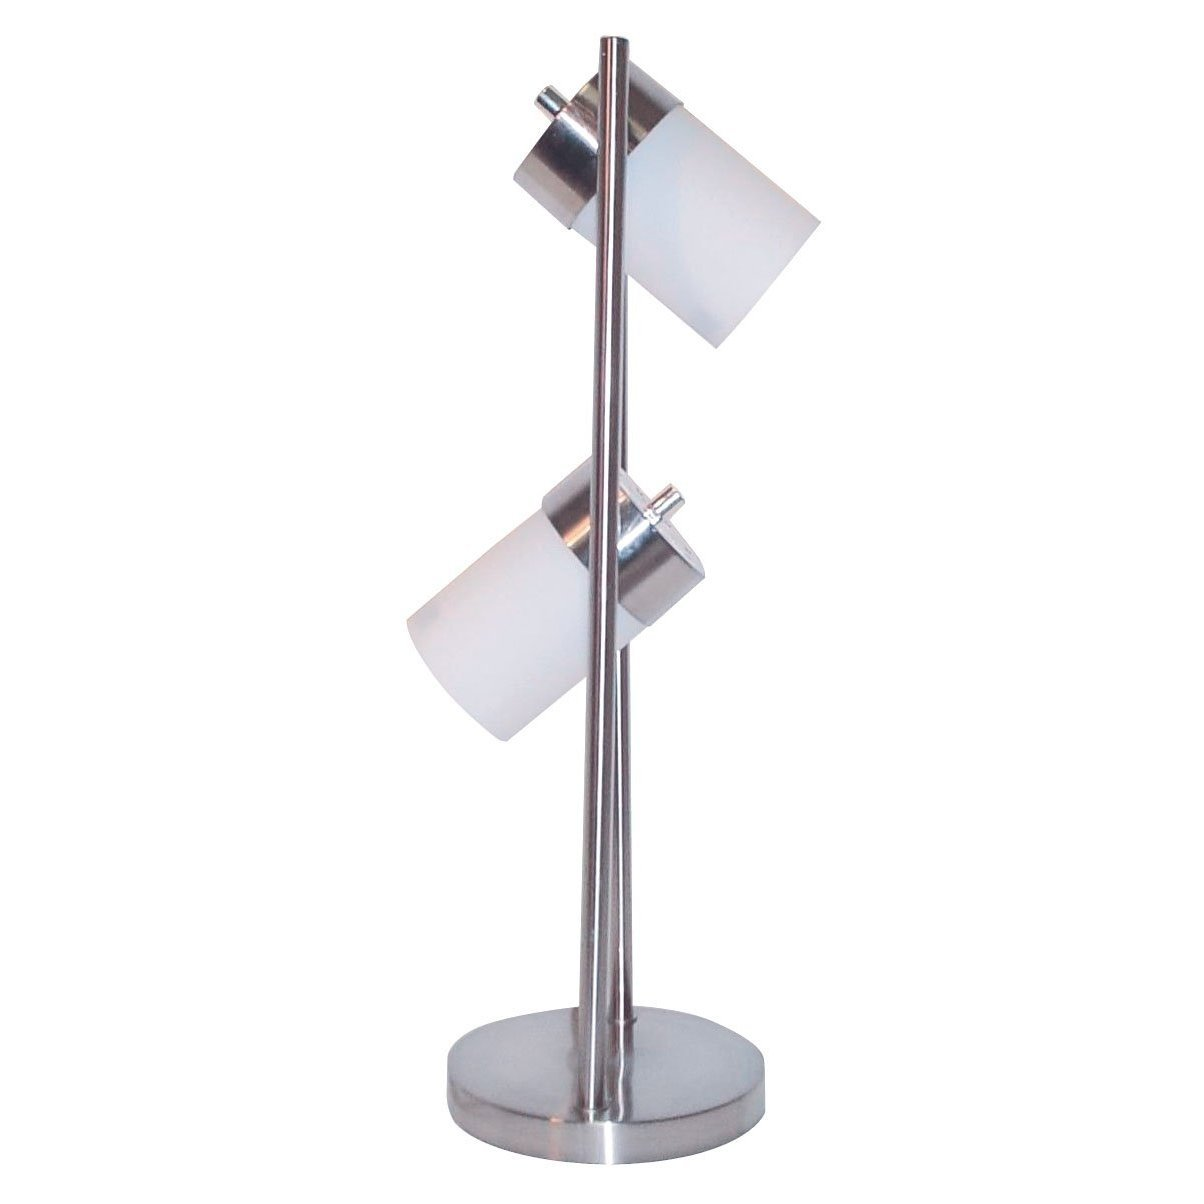 HPP Inc 3031TW 25-Inch 2-Light Adjustable Table Lamp, White